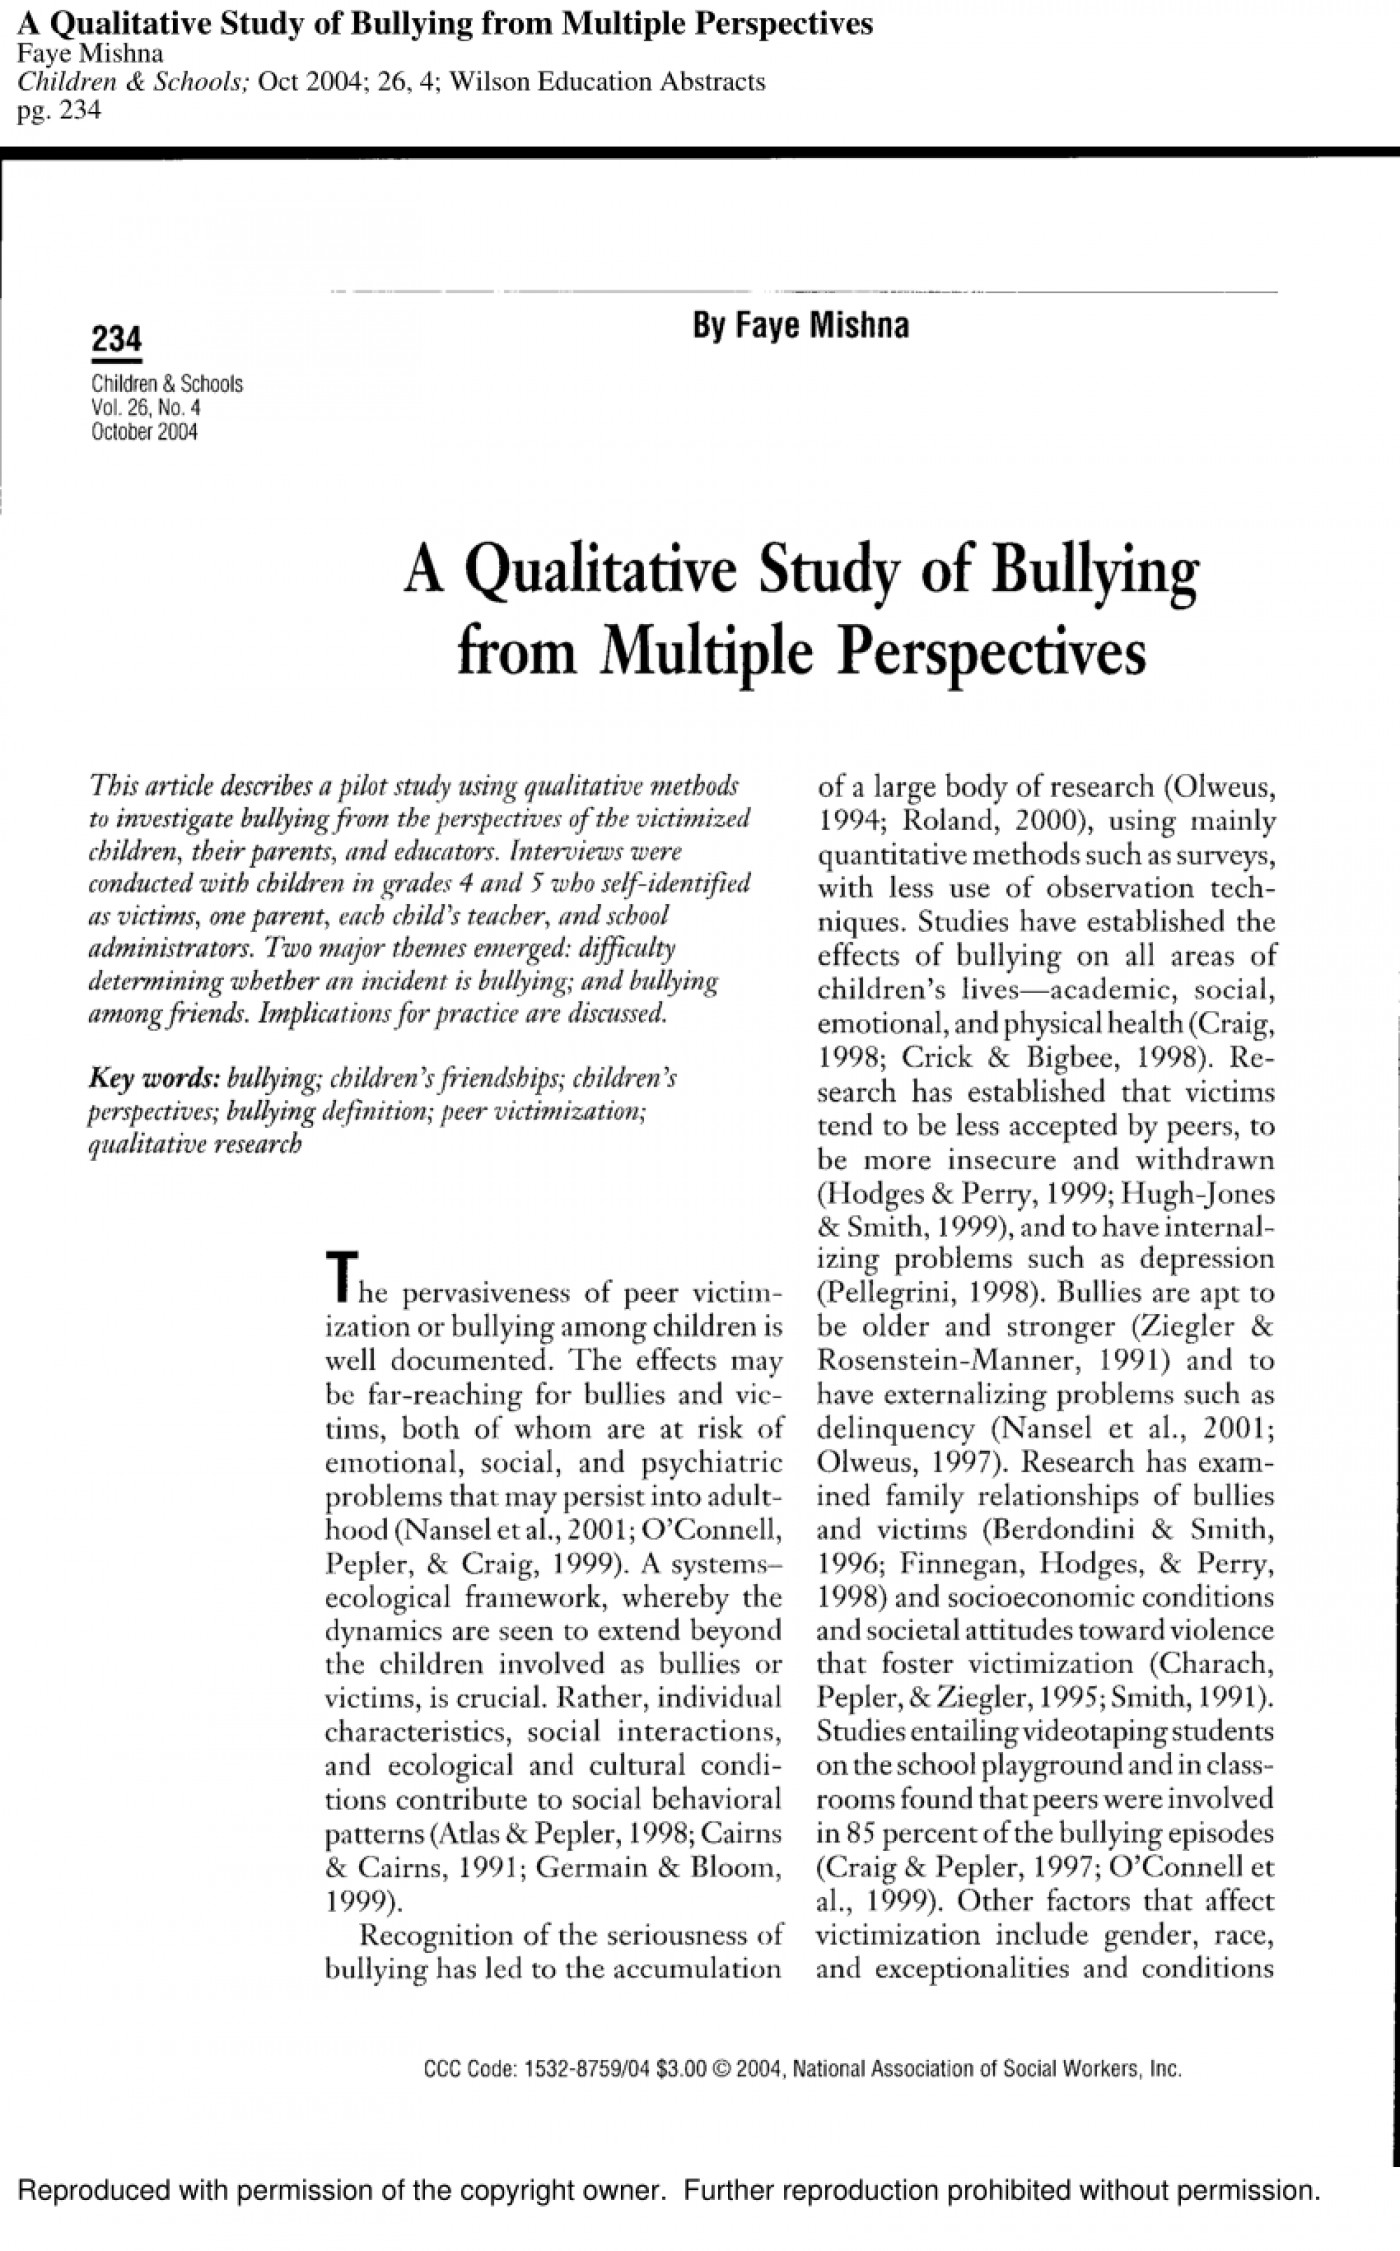 003 Bullying Research Paper Pdf Imposing Short About Quantitative Effects Of 1400